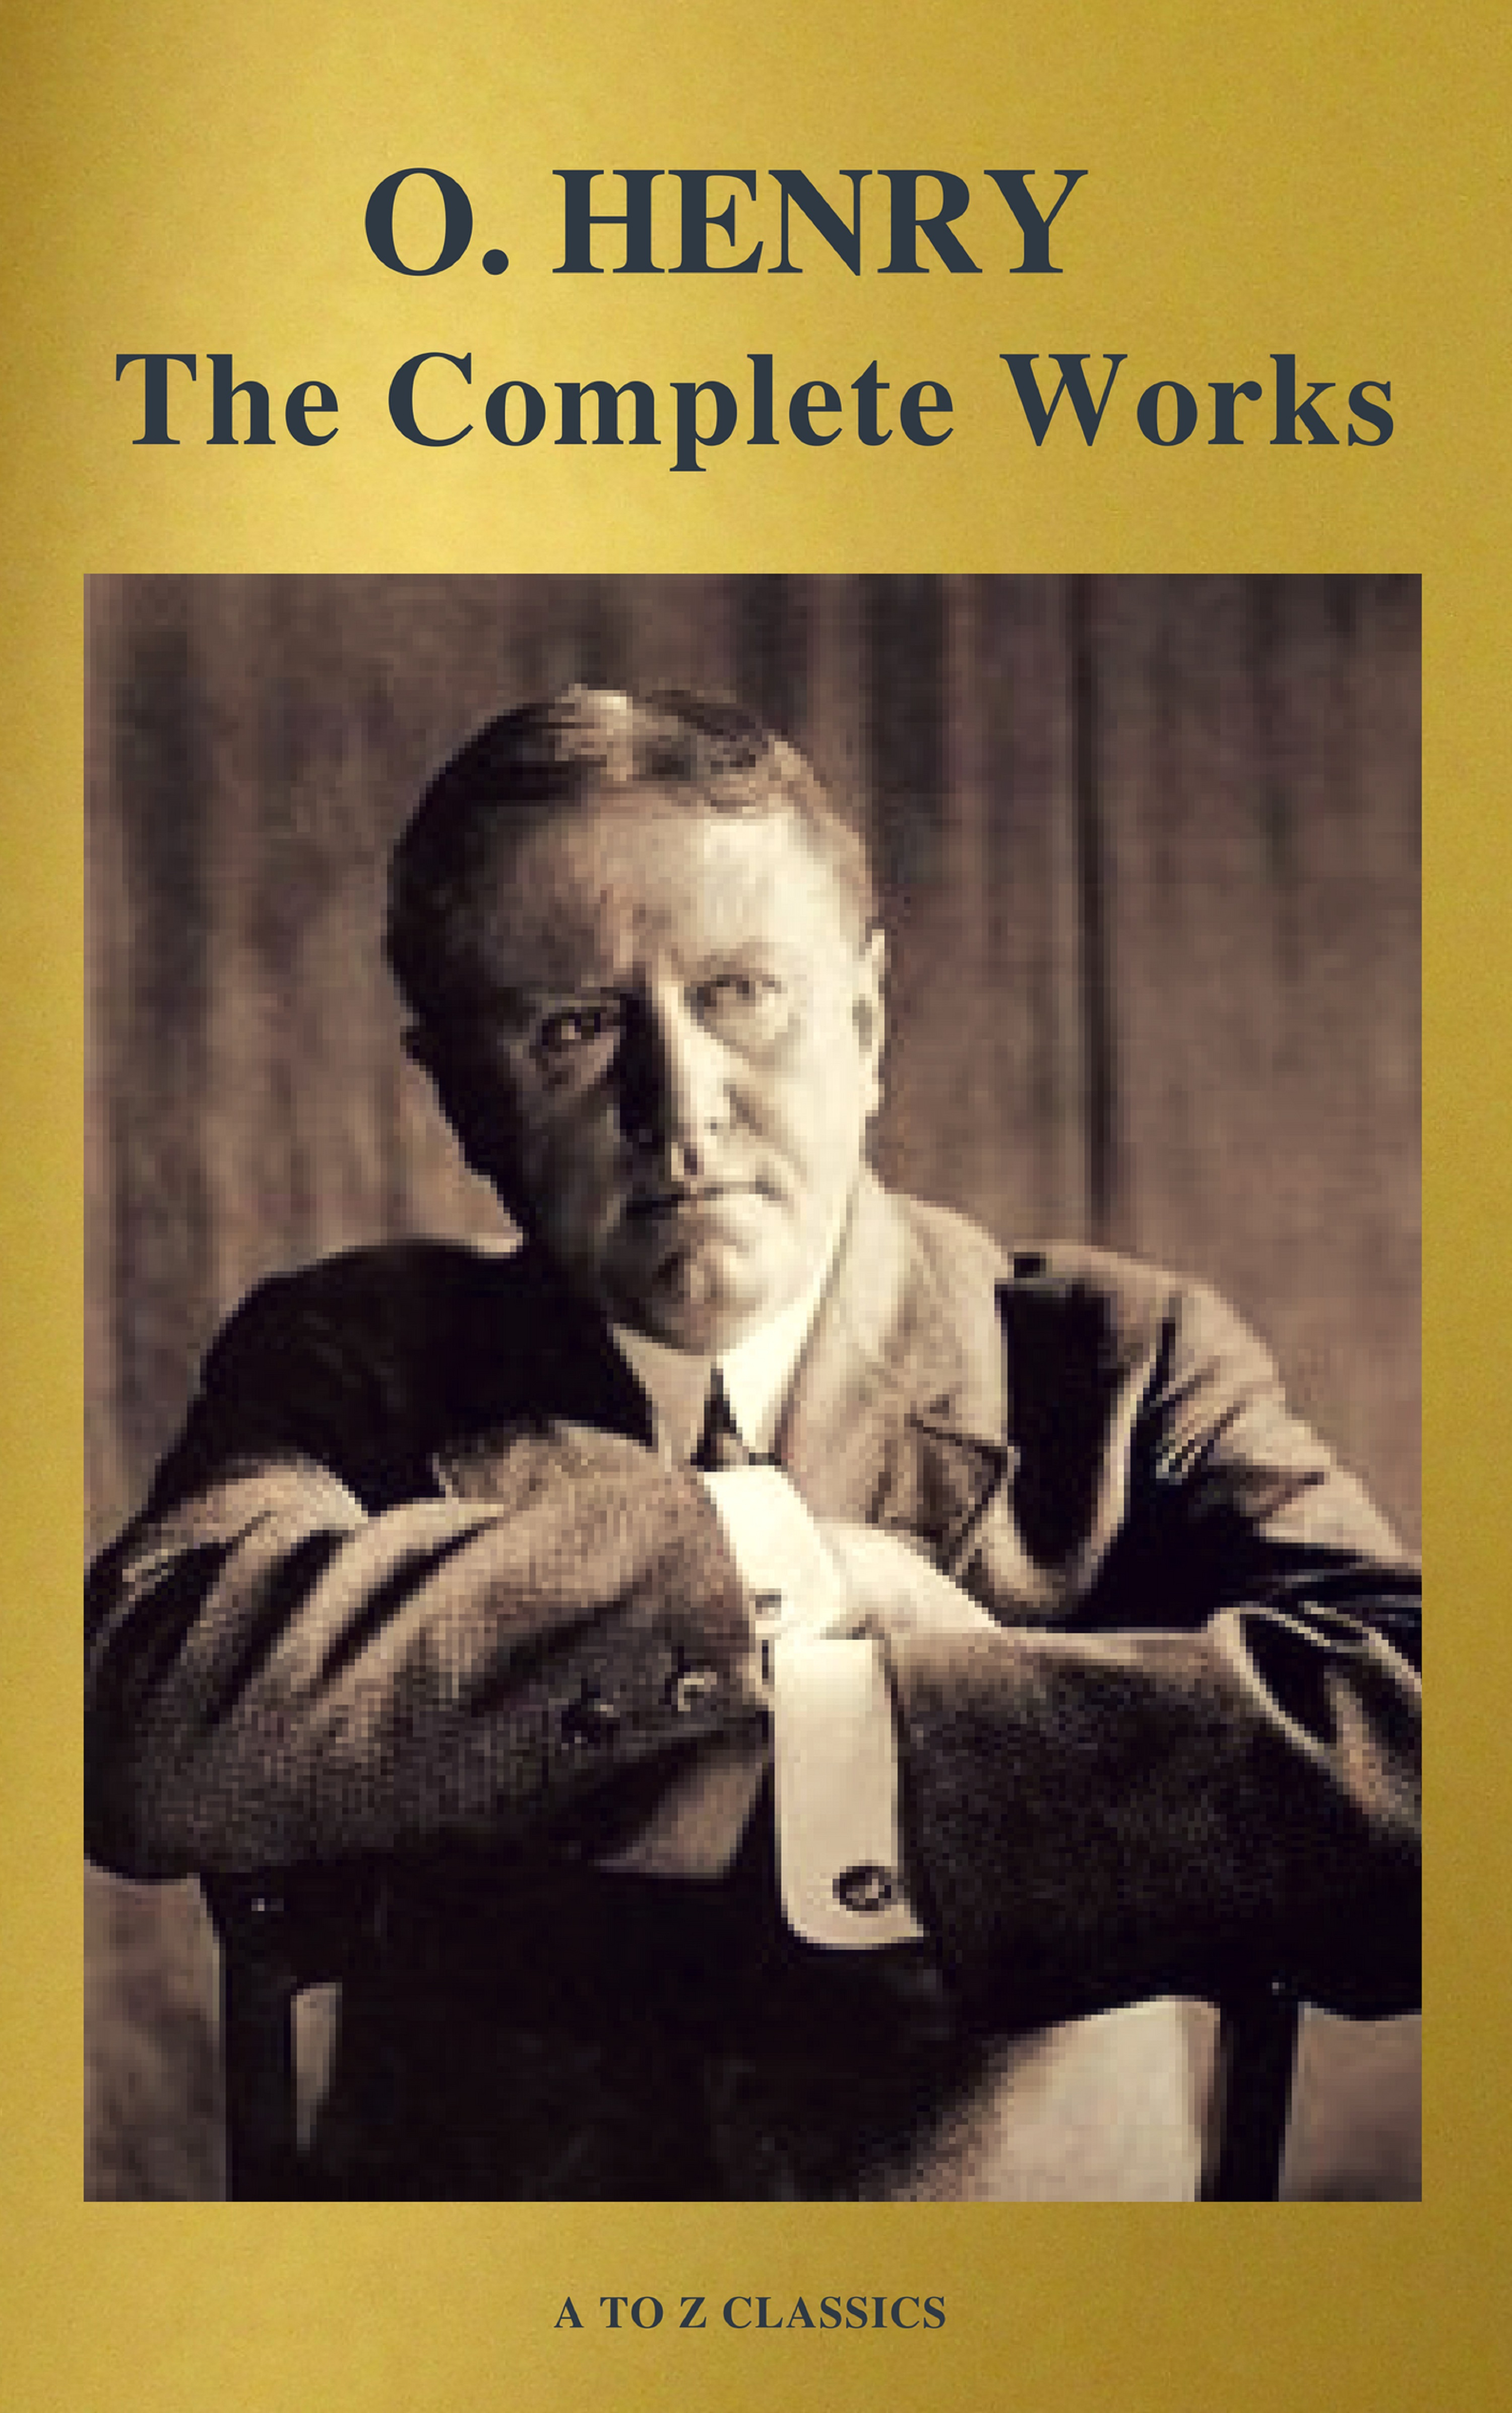 цена на O. Hooper Henry The Complete Works of O. Henry: Short Stories, Poems and Letters (illustrated, Annotated and Active TOC) (A to Z Classics)